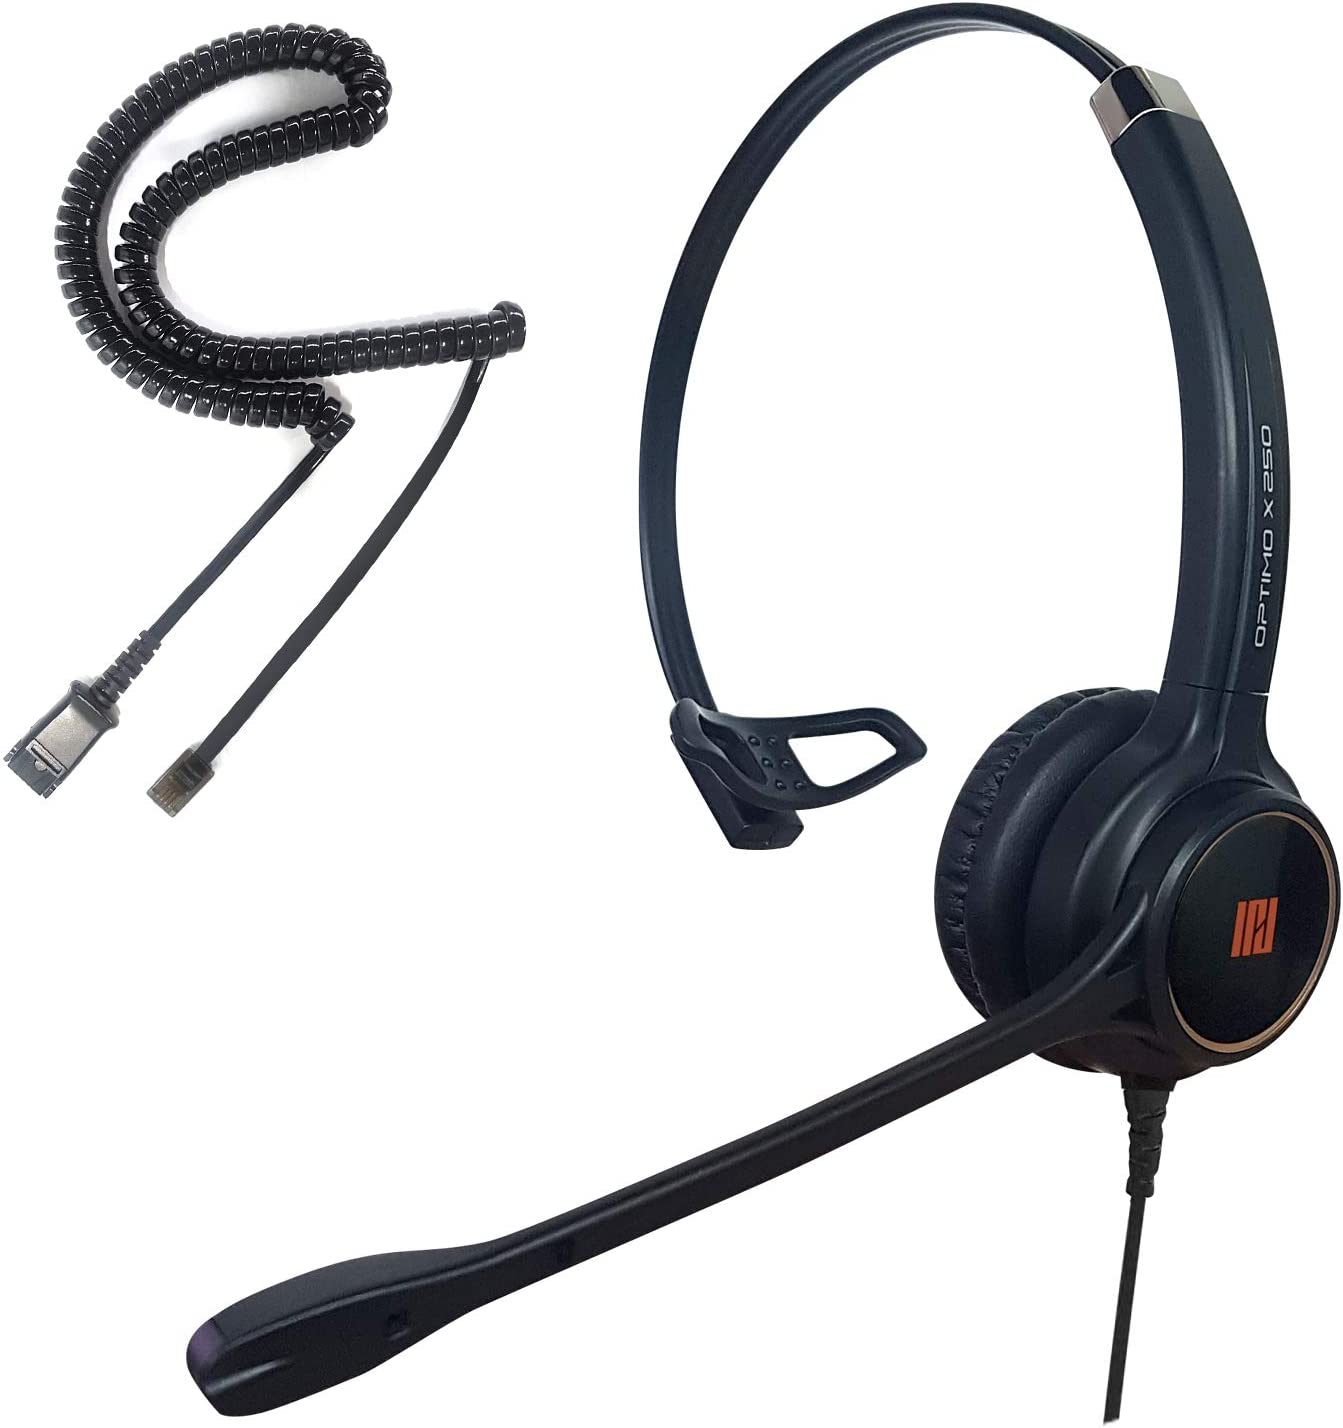 IPD IPH-250 Optimo-X Single Ear Noise Cancelling, Corded Headset for Call Center,Office and Landline Phones w U10P Bottom Cable w RJ9 Jack Works with Poycom VVX,Avaya,Nortel, Mitel and Many IP Phones